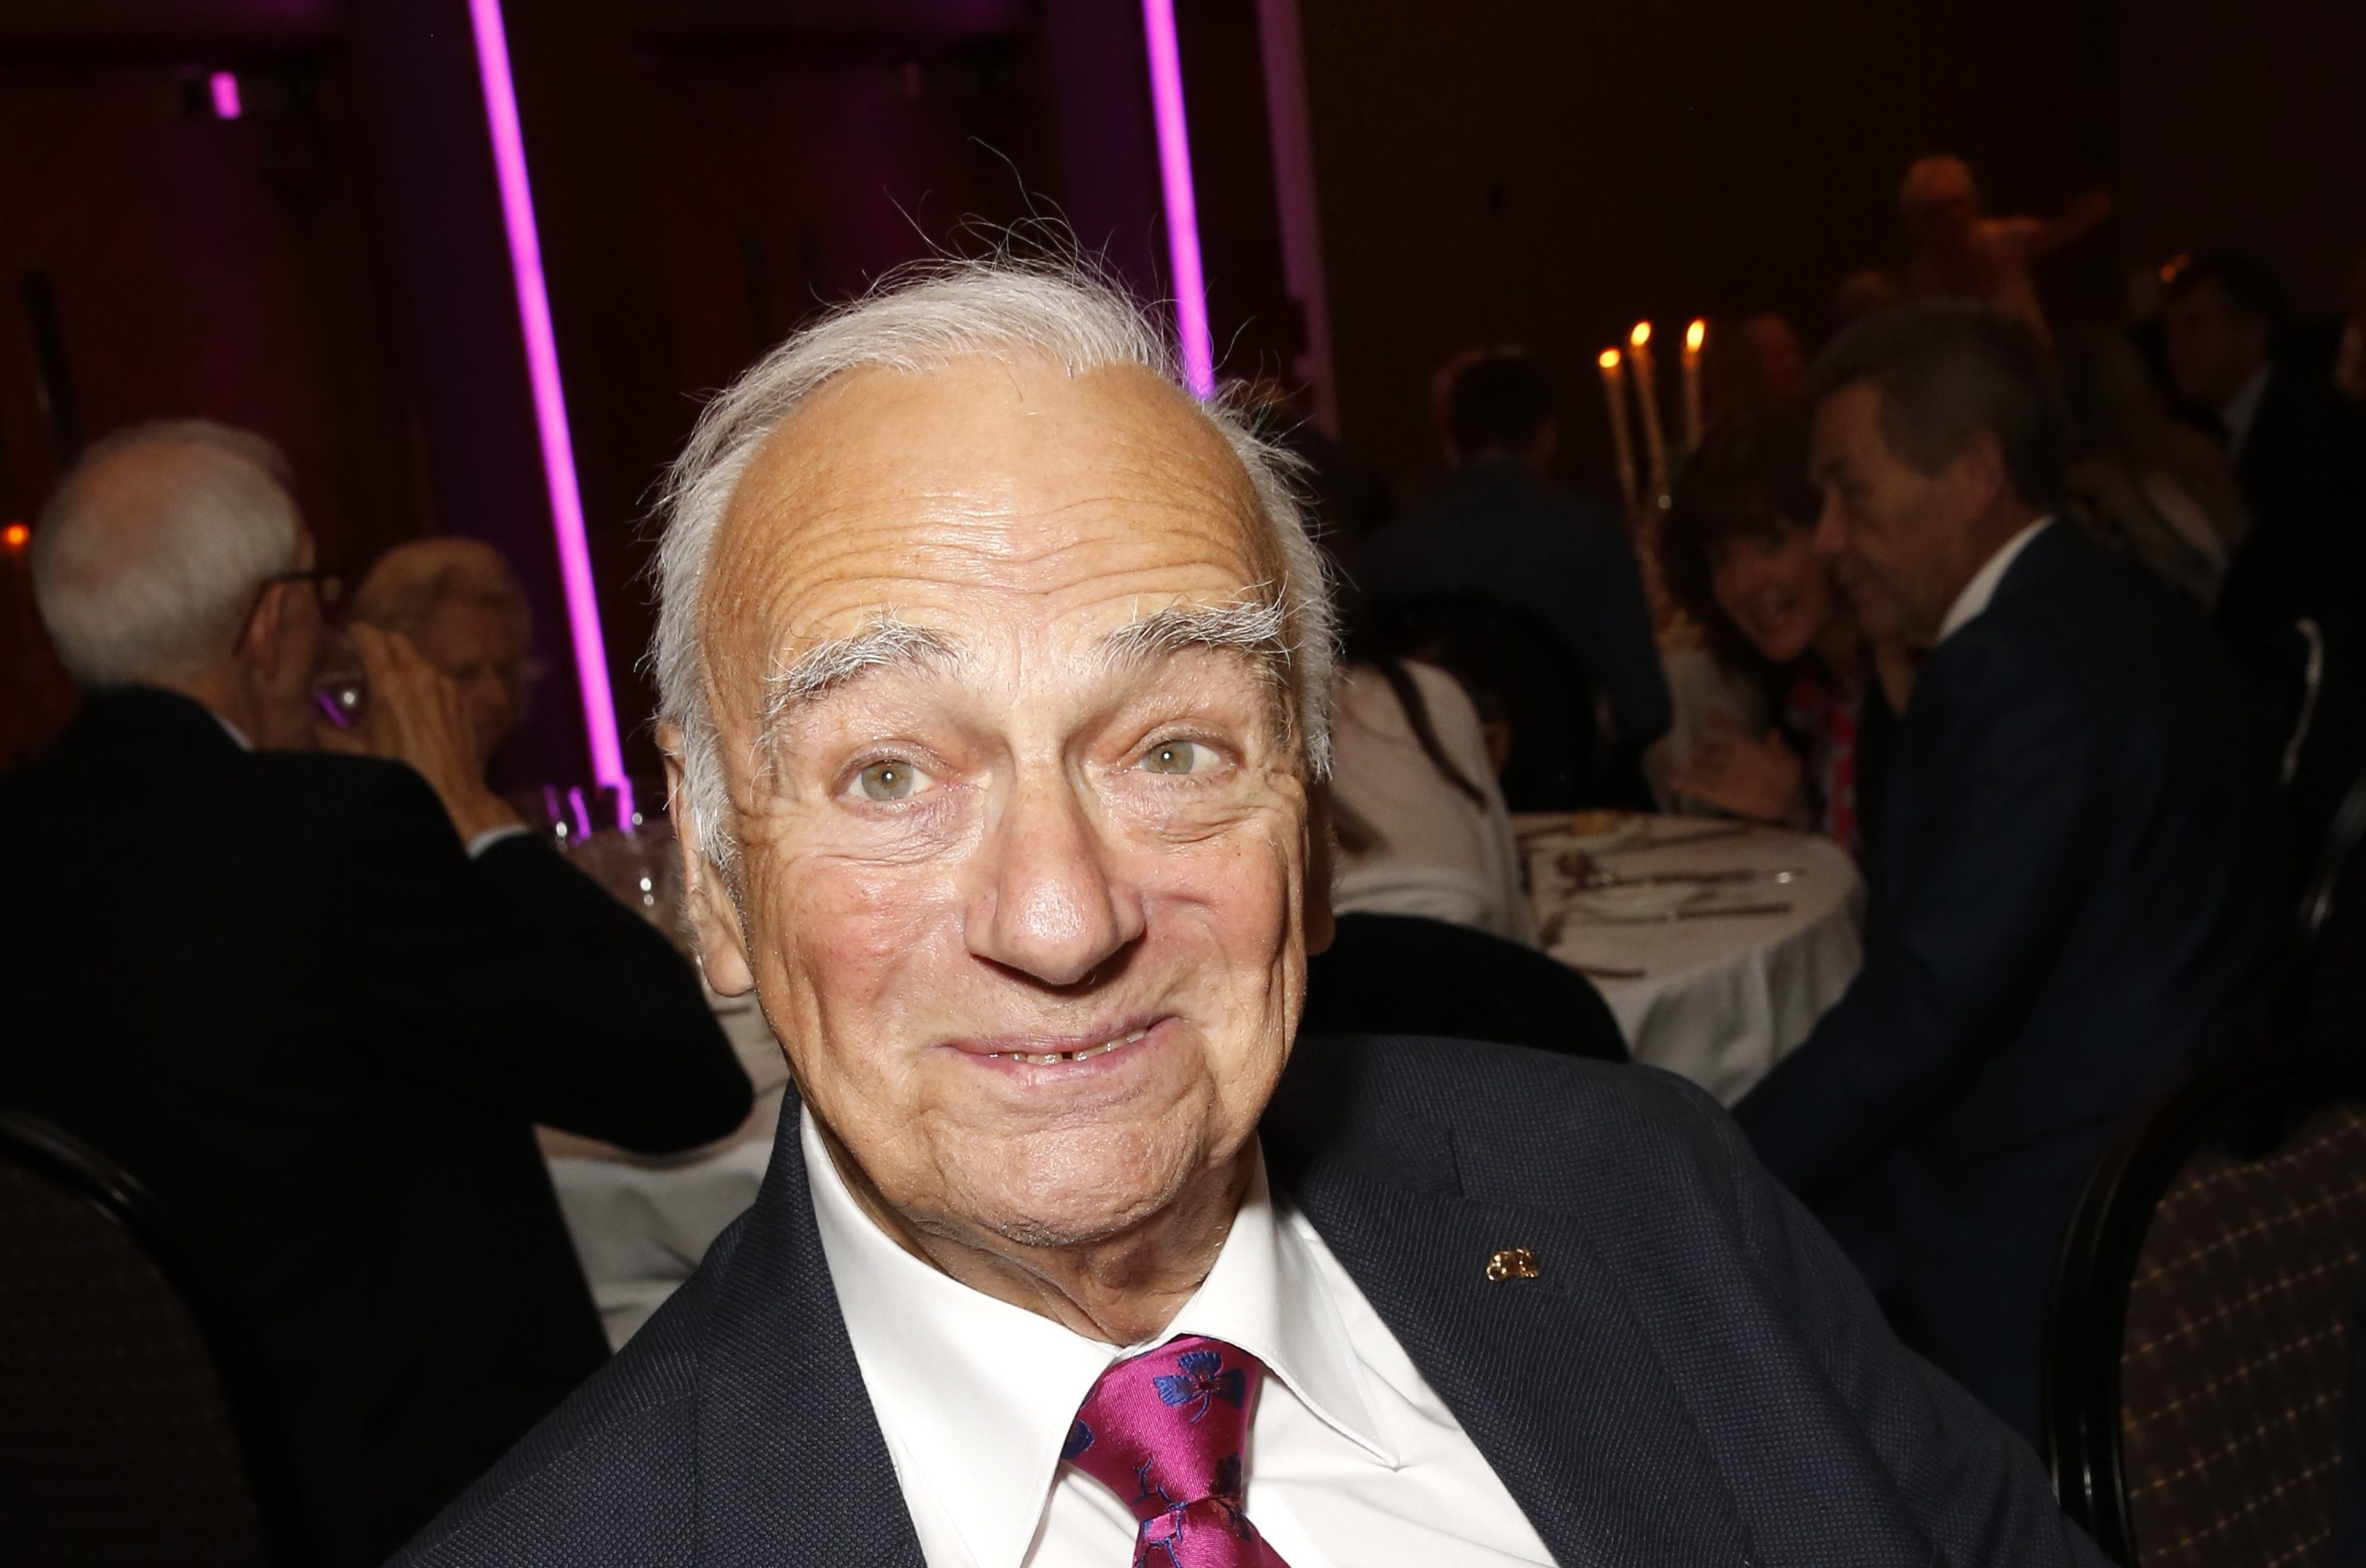 Former Coronation Street actor Roy Hudd has died, aged 83